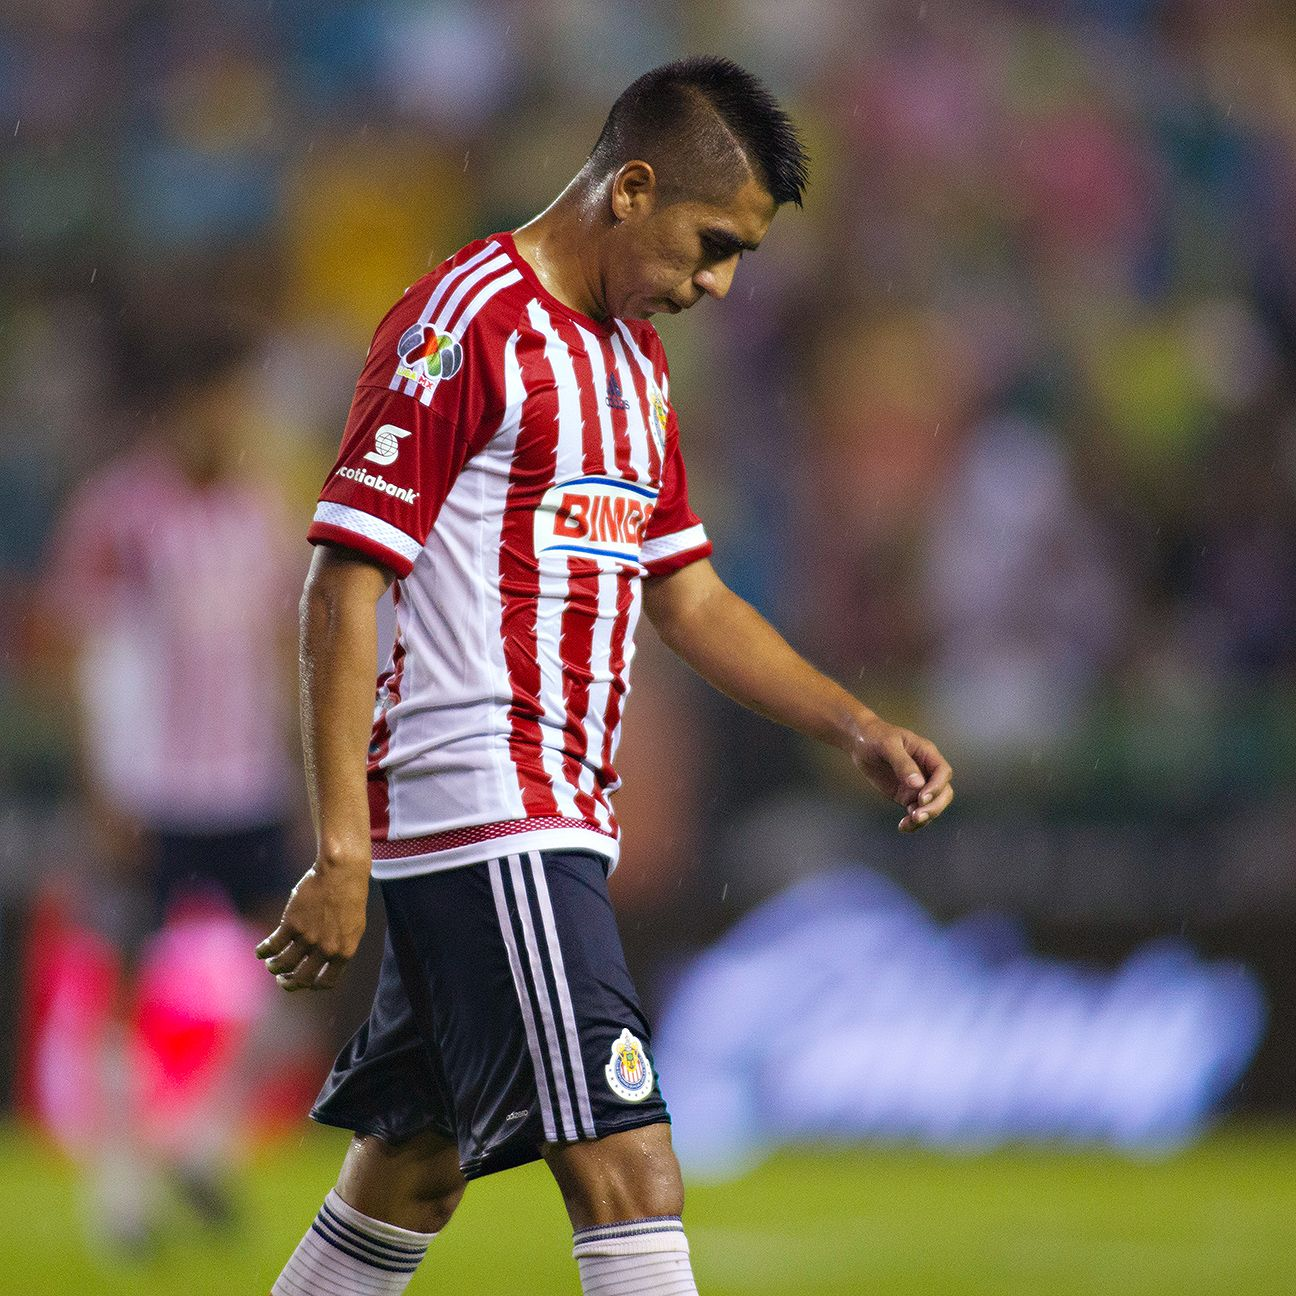 The woes of Jose Ramirez and Chivas continued with a soggy 1-0 defeat in Guanajuato.